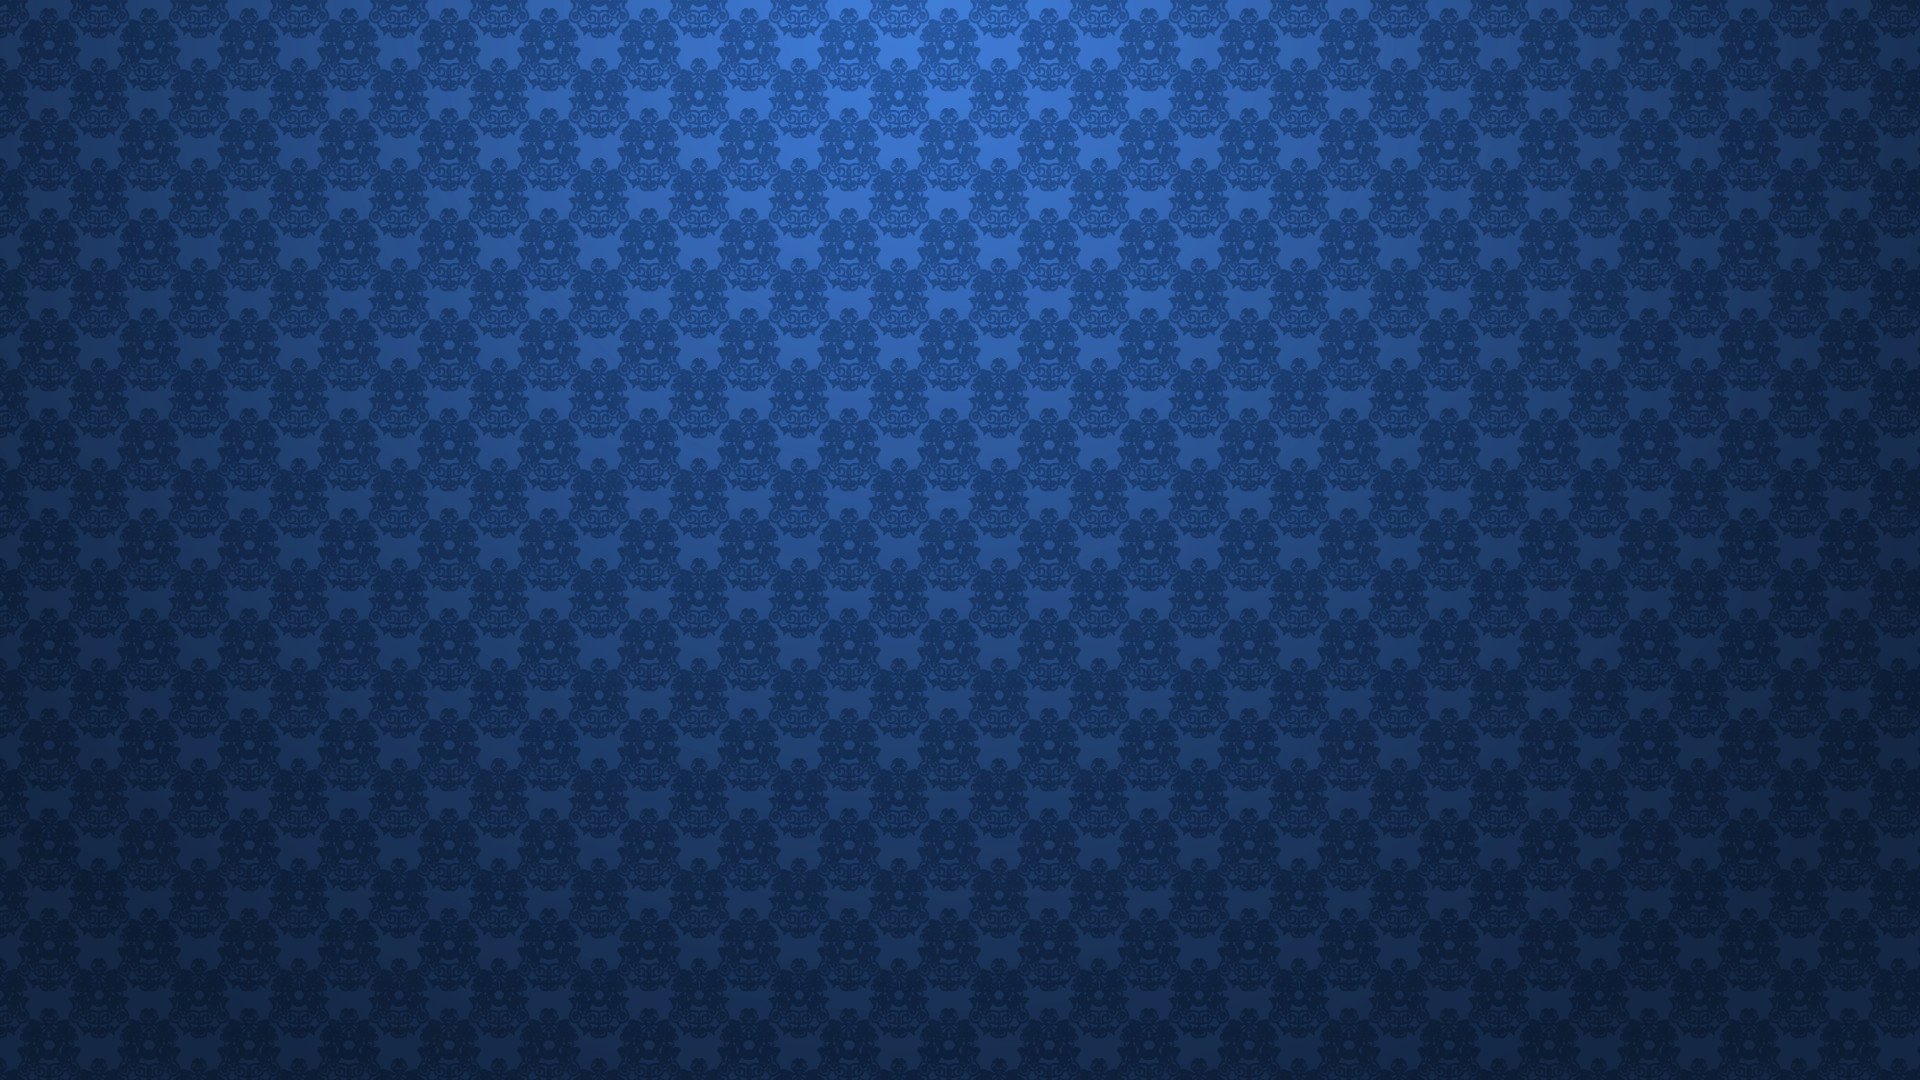 pattern   Awesome Wallpapers pattern   Awesome Wallpapers   Page 2